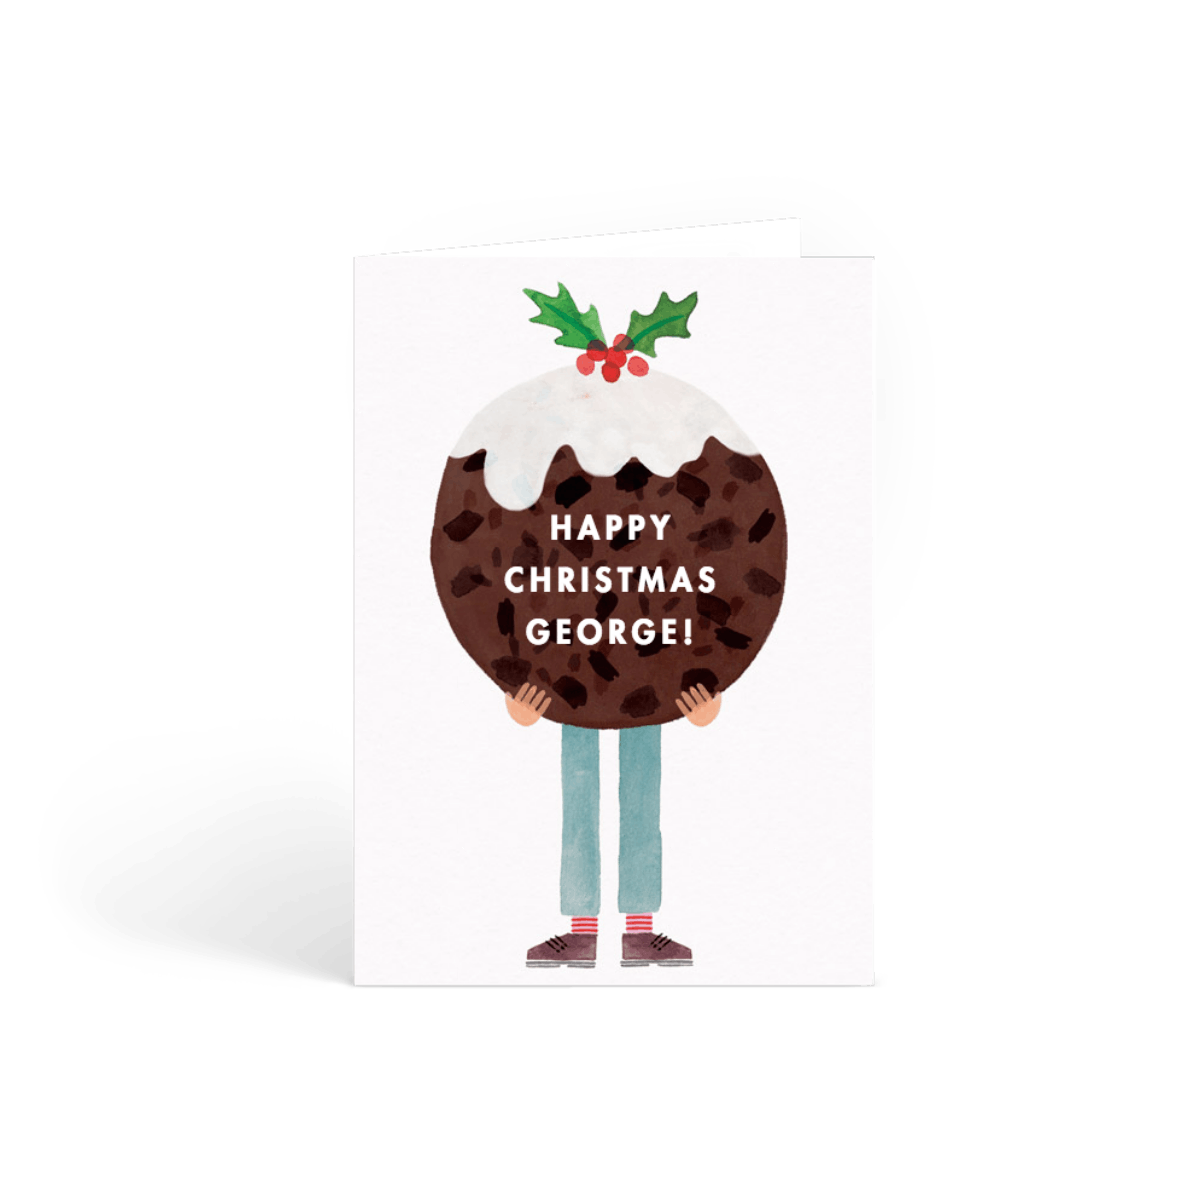 Https%3a%2f%2fwww.papier.com%2fproduct image%2f8493%2f2%2fchristmas pudding boy 2105 front 1570560507.png?ixlib=rb 1.1